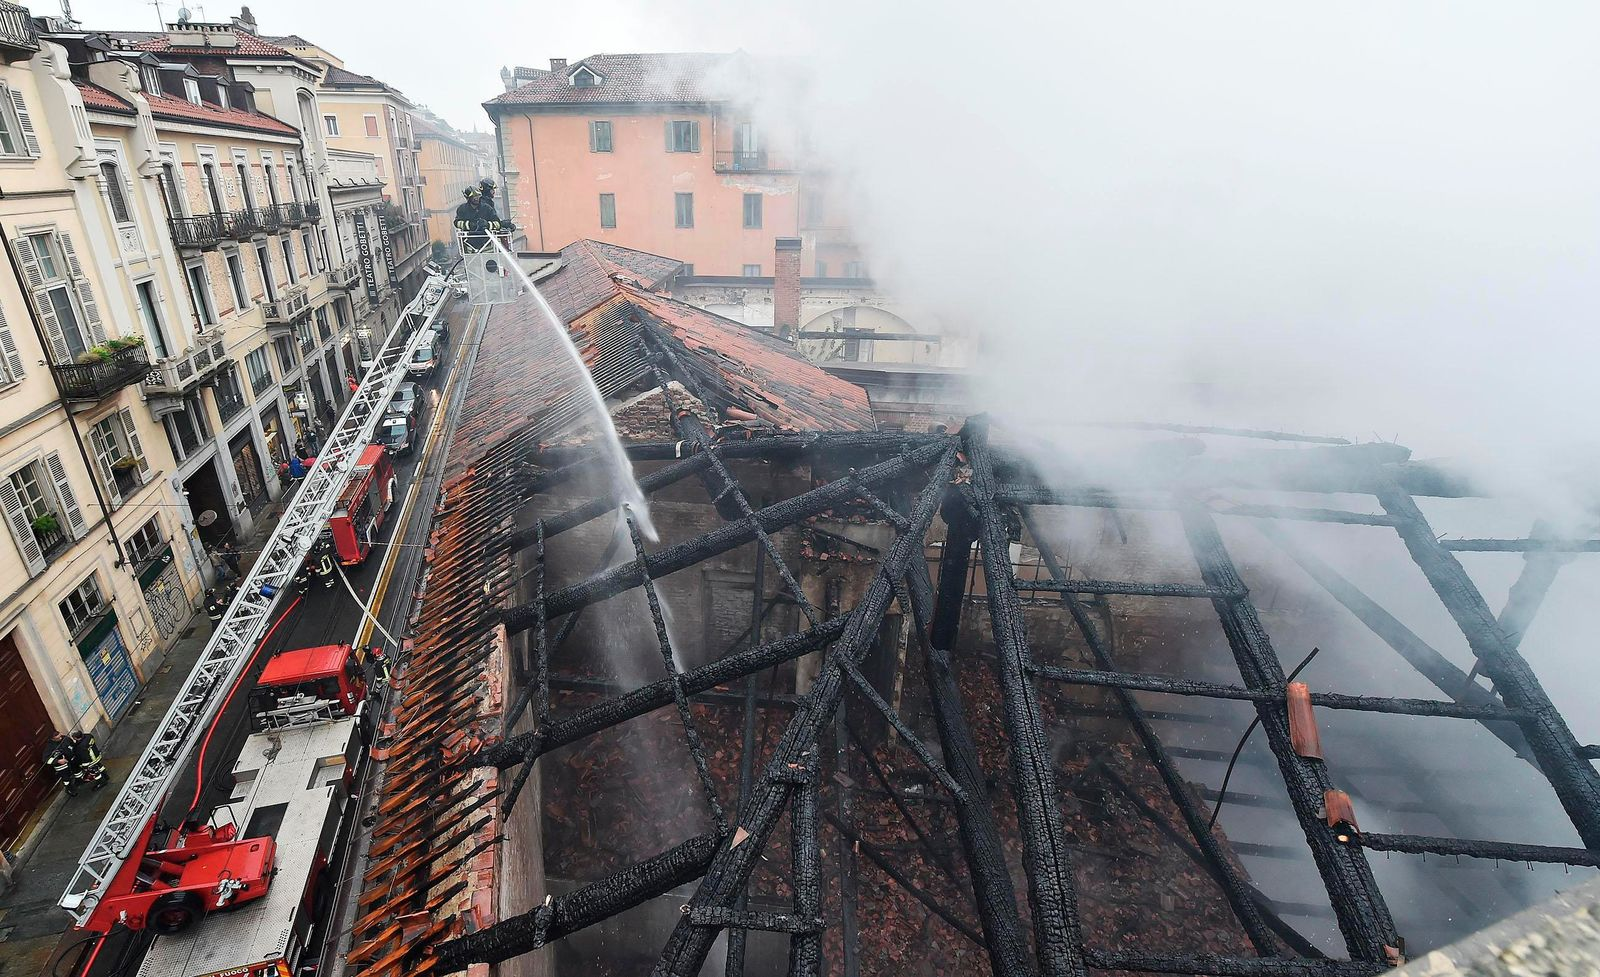 Firefighters put out a fire on the rooftop of the Cavallerizza Reale, in Turin, northern Italy, Monday, Oct. 21, 2019. (Alessandro Di Marco/ANSA via AP)